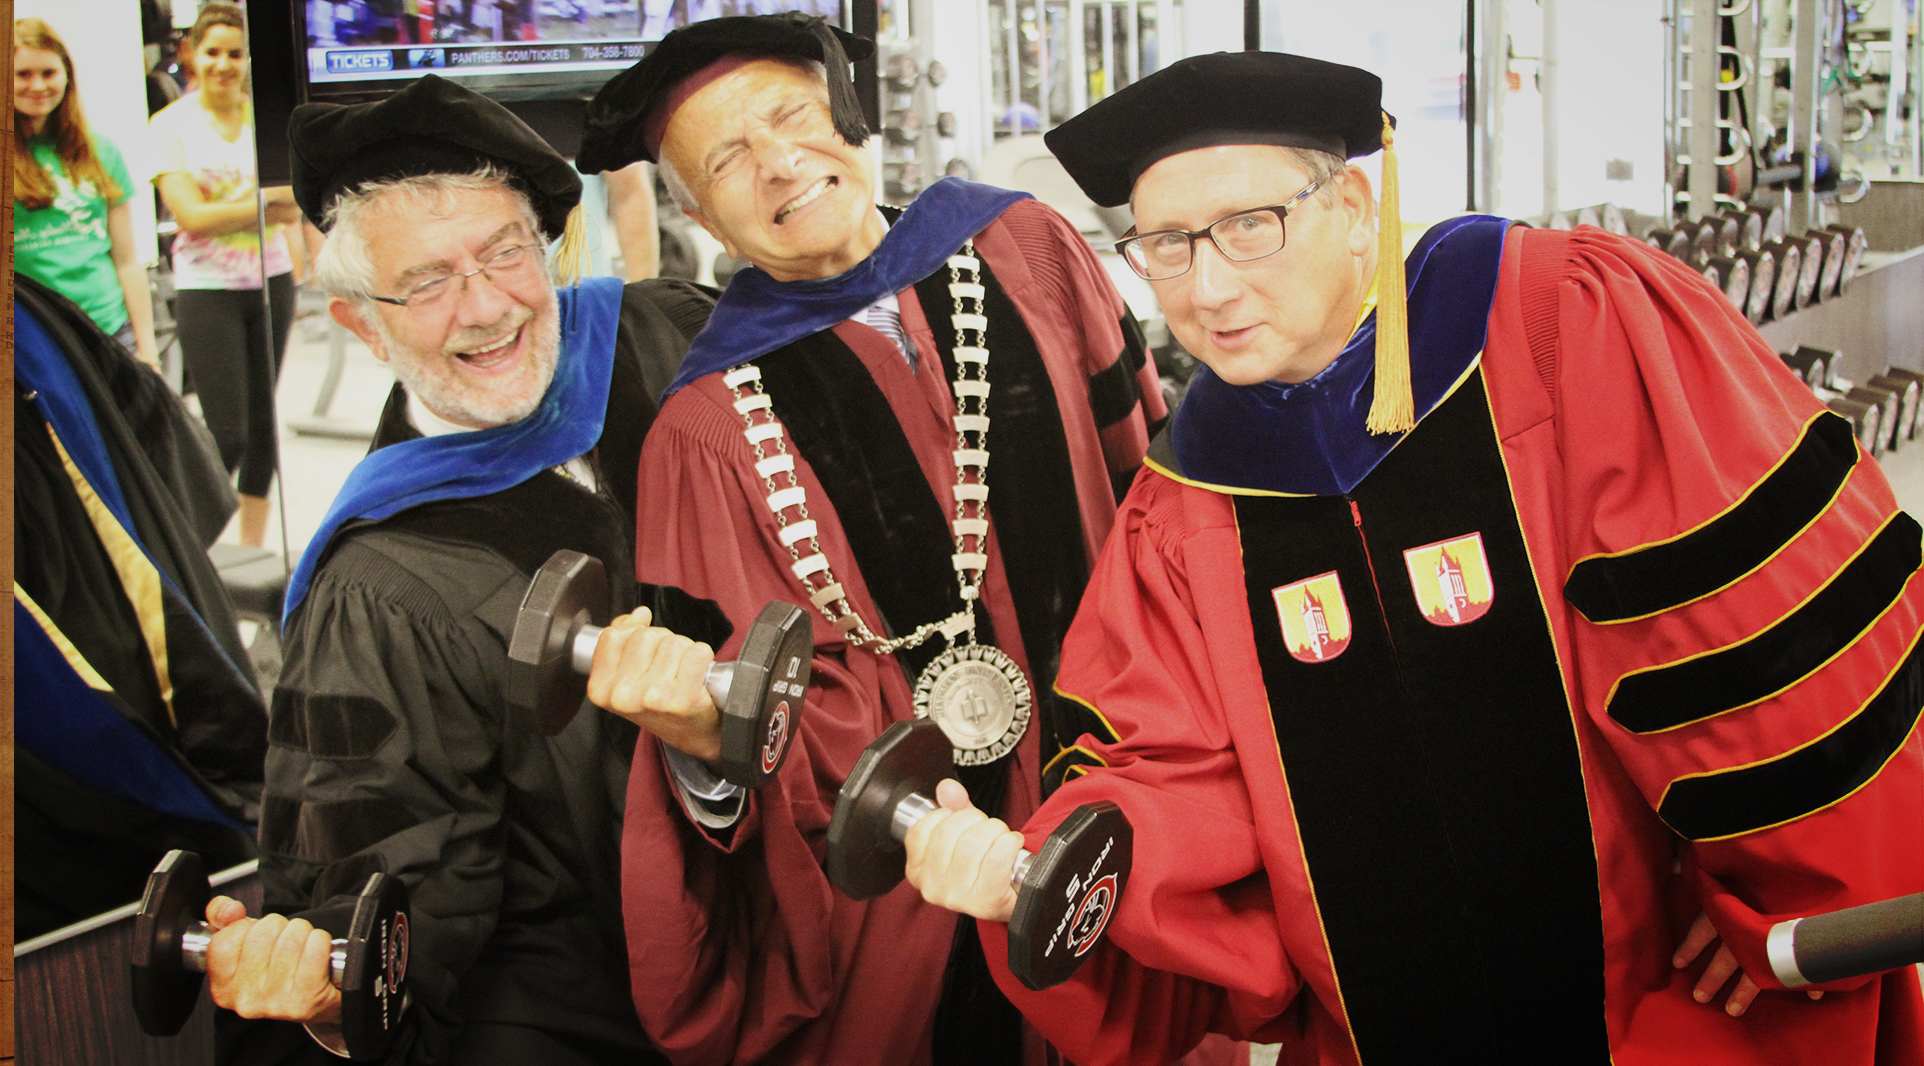 Chancellor Danielle Struppa, Presidnet Jim Doti and Associate Vice Chancellor Jerry Price check out the new equipment in the Julianne Argyros Fitness Center immediately following Convocation 2013. Don't fret -- the new dress code does not require caps and gowns.